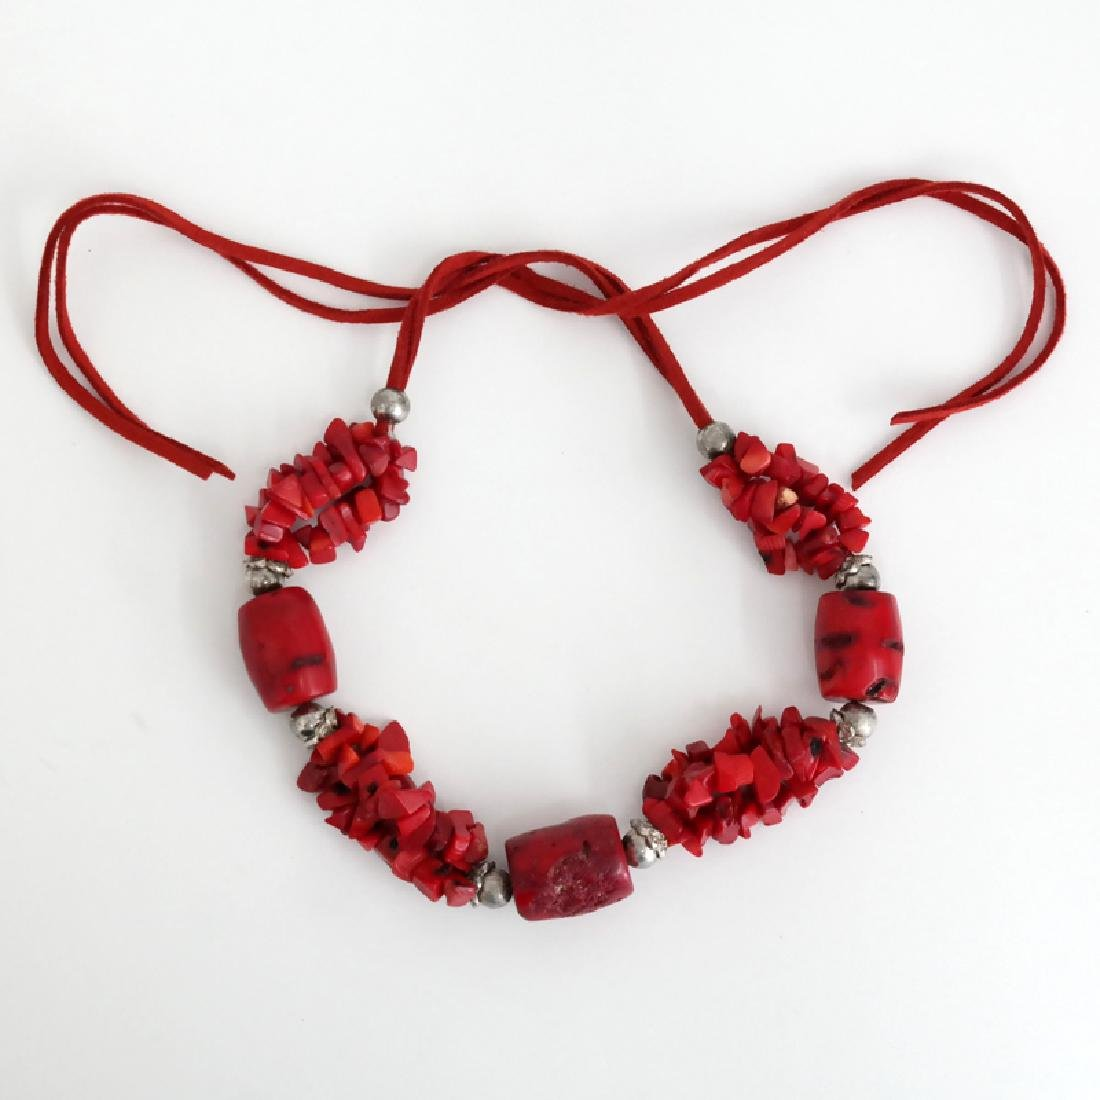 Genuine red BAMBOO CORAL and silver tone beads necklace - 3